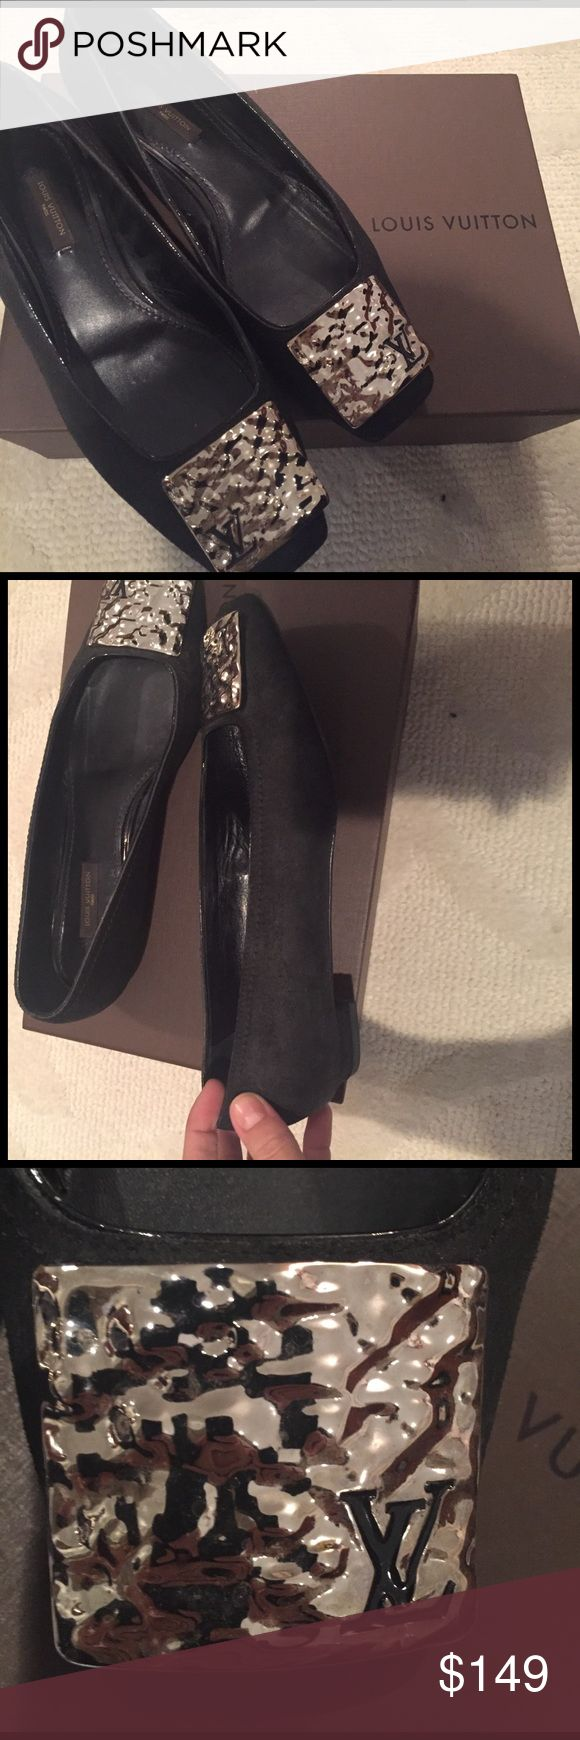 Louis Vuitton flats w/ original box! Classic black LV flats with silver toe detail including the LV logo. Some wear on the soles otherwise no signs of wear. Box included. They first true to size and are very comfortable! Great for work of casual wear. Make an offer :) Louis Vuitton Shoes Flats & Loafers